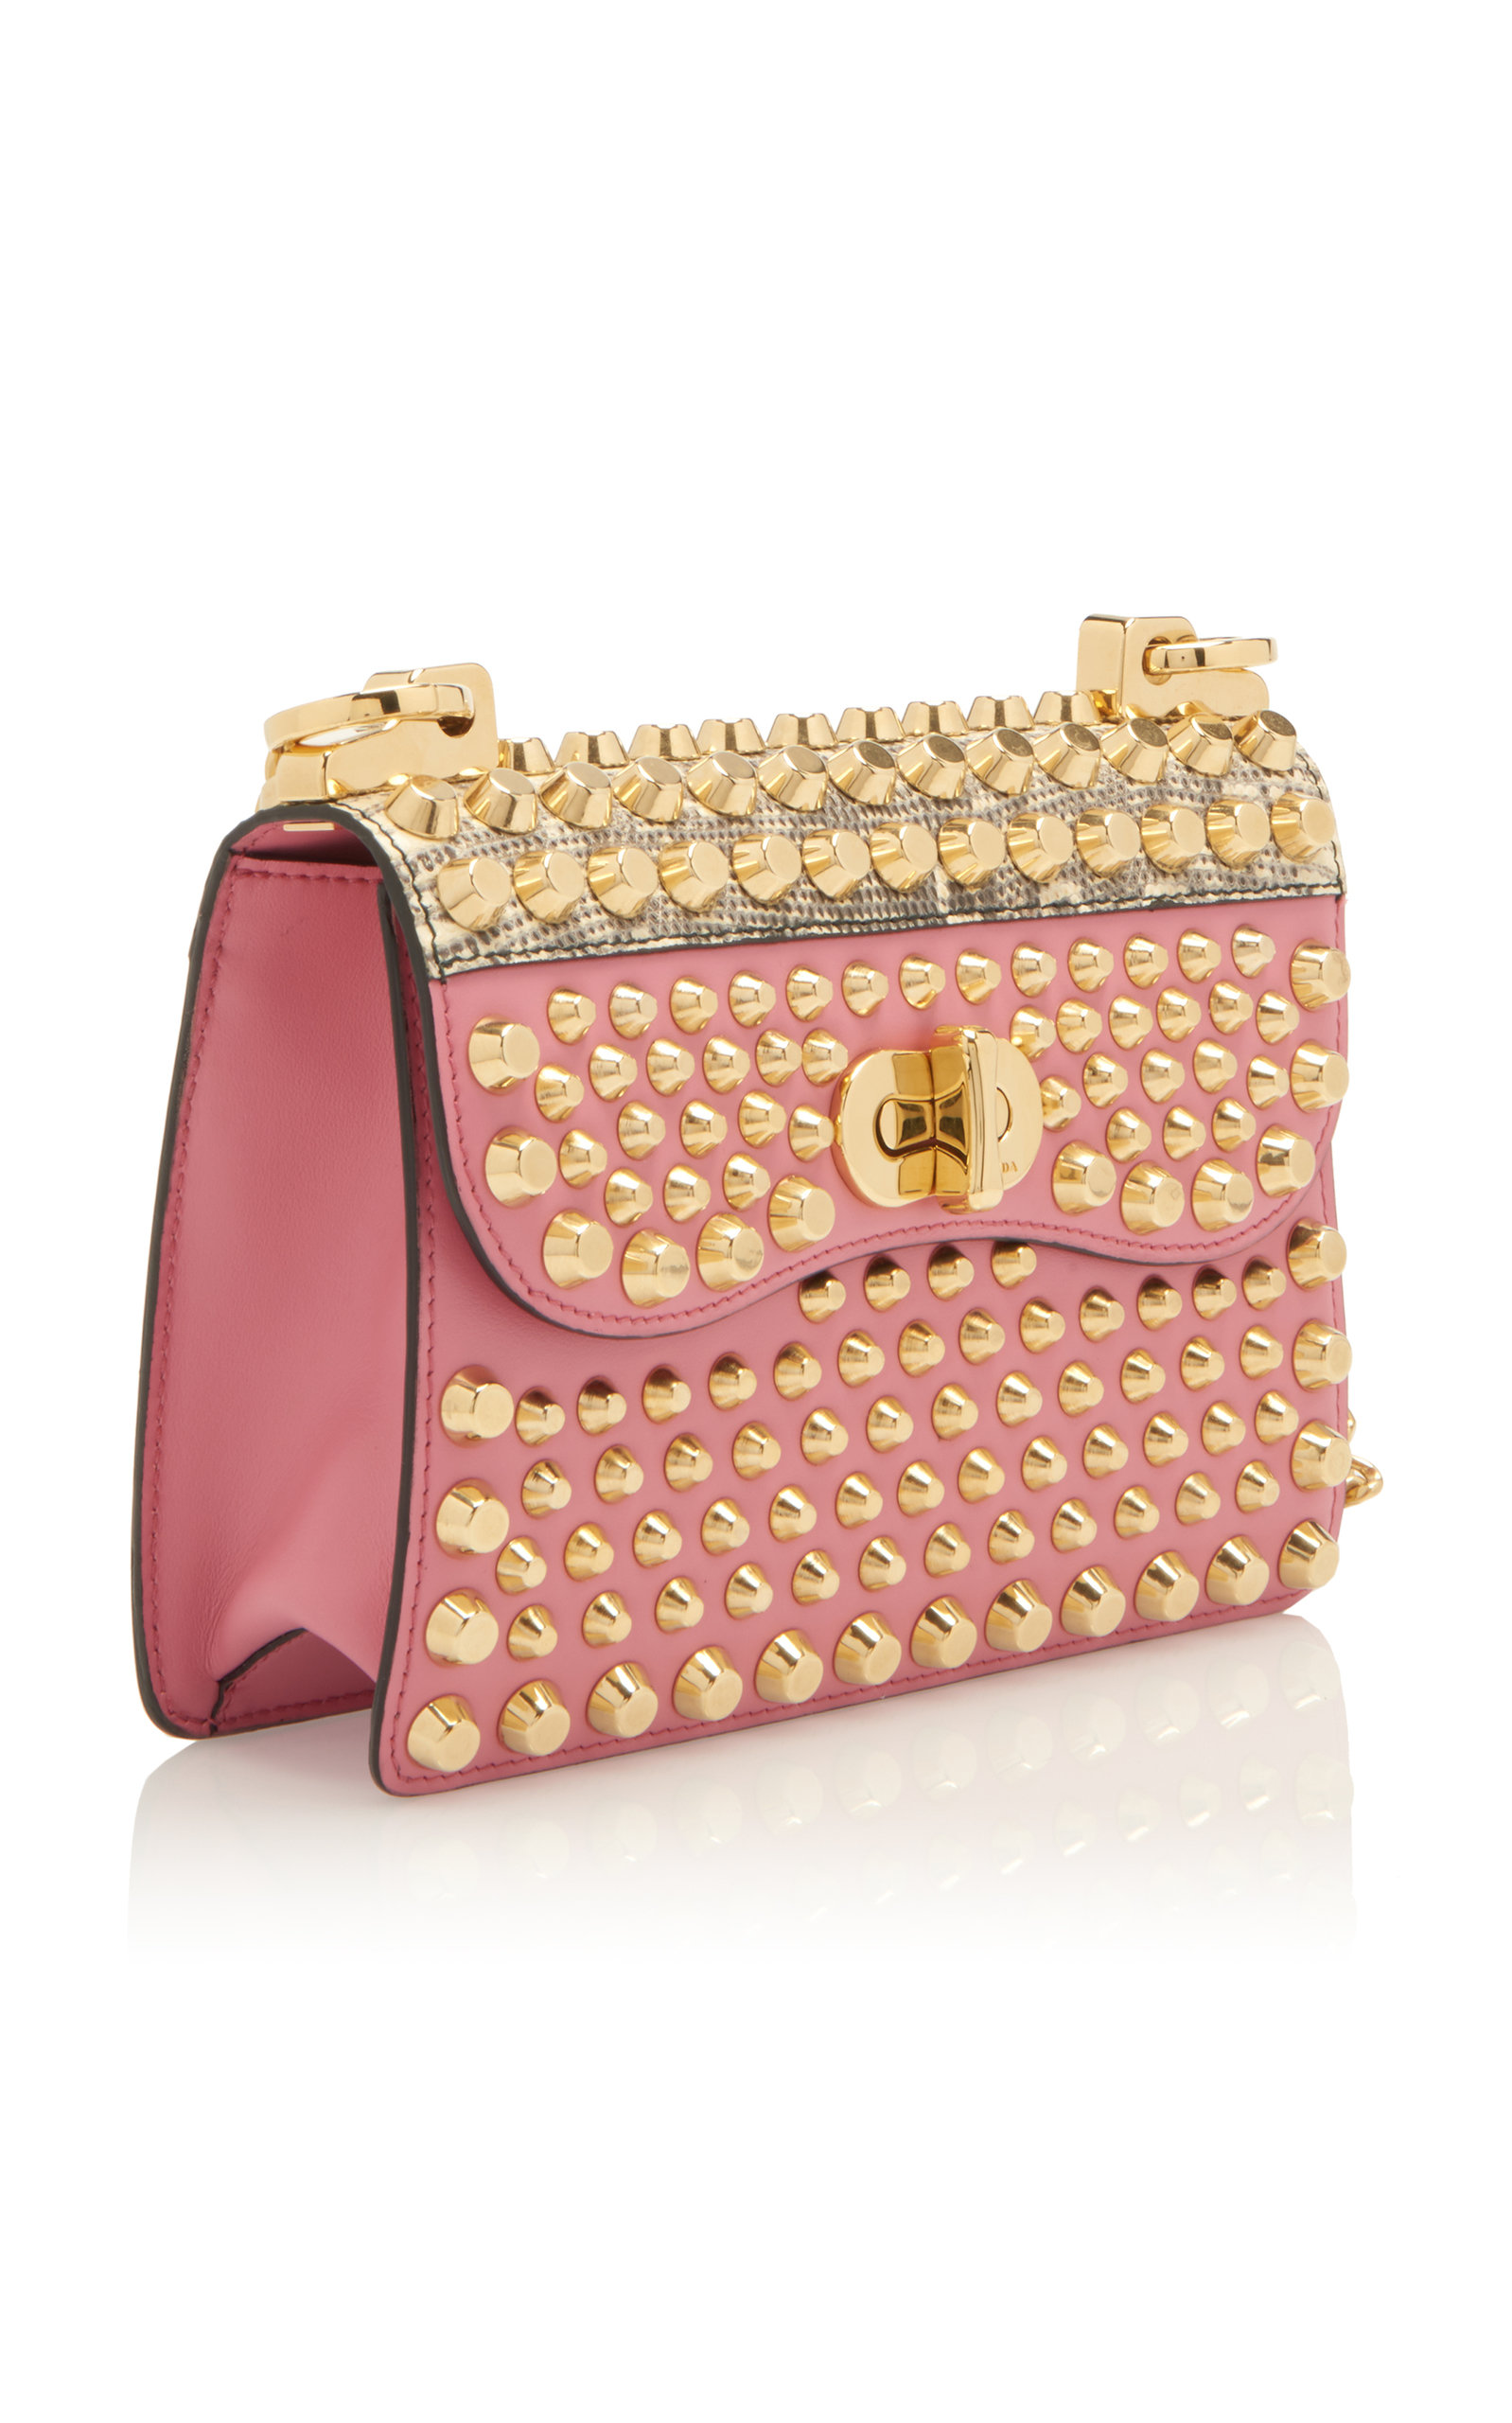 3b3322871b4f PradaStudded Lizard-Trimmed Leather Shoulder Bag. CLOSE. Loading. Loading.  Loading